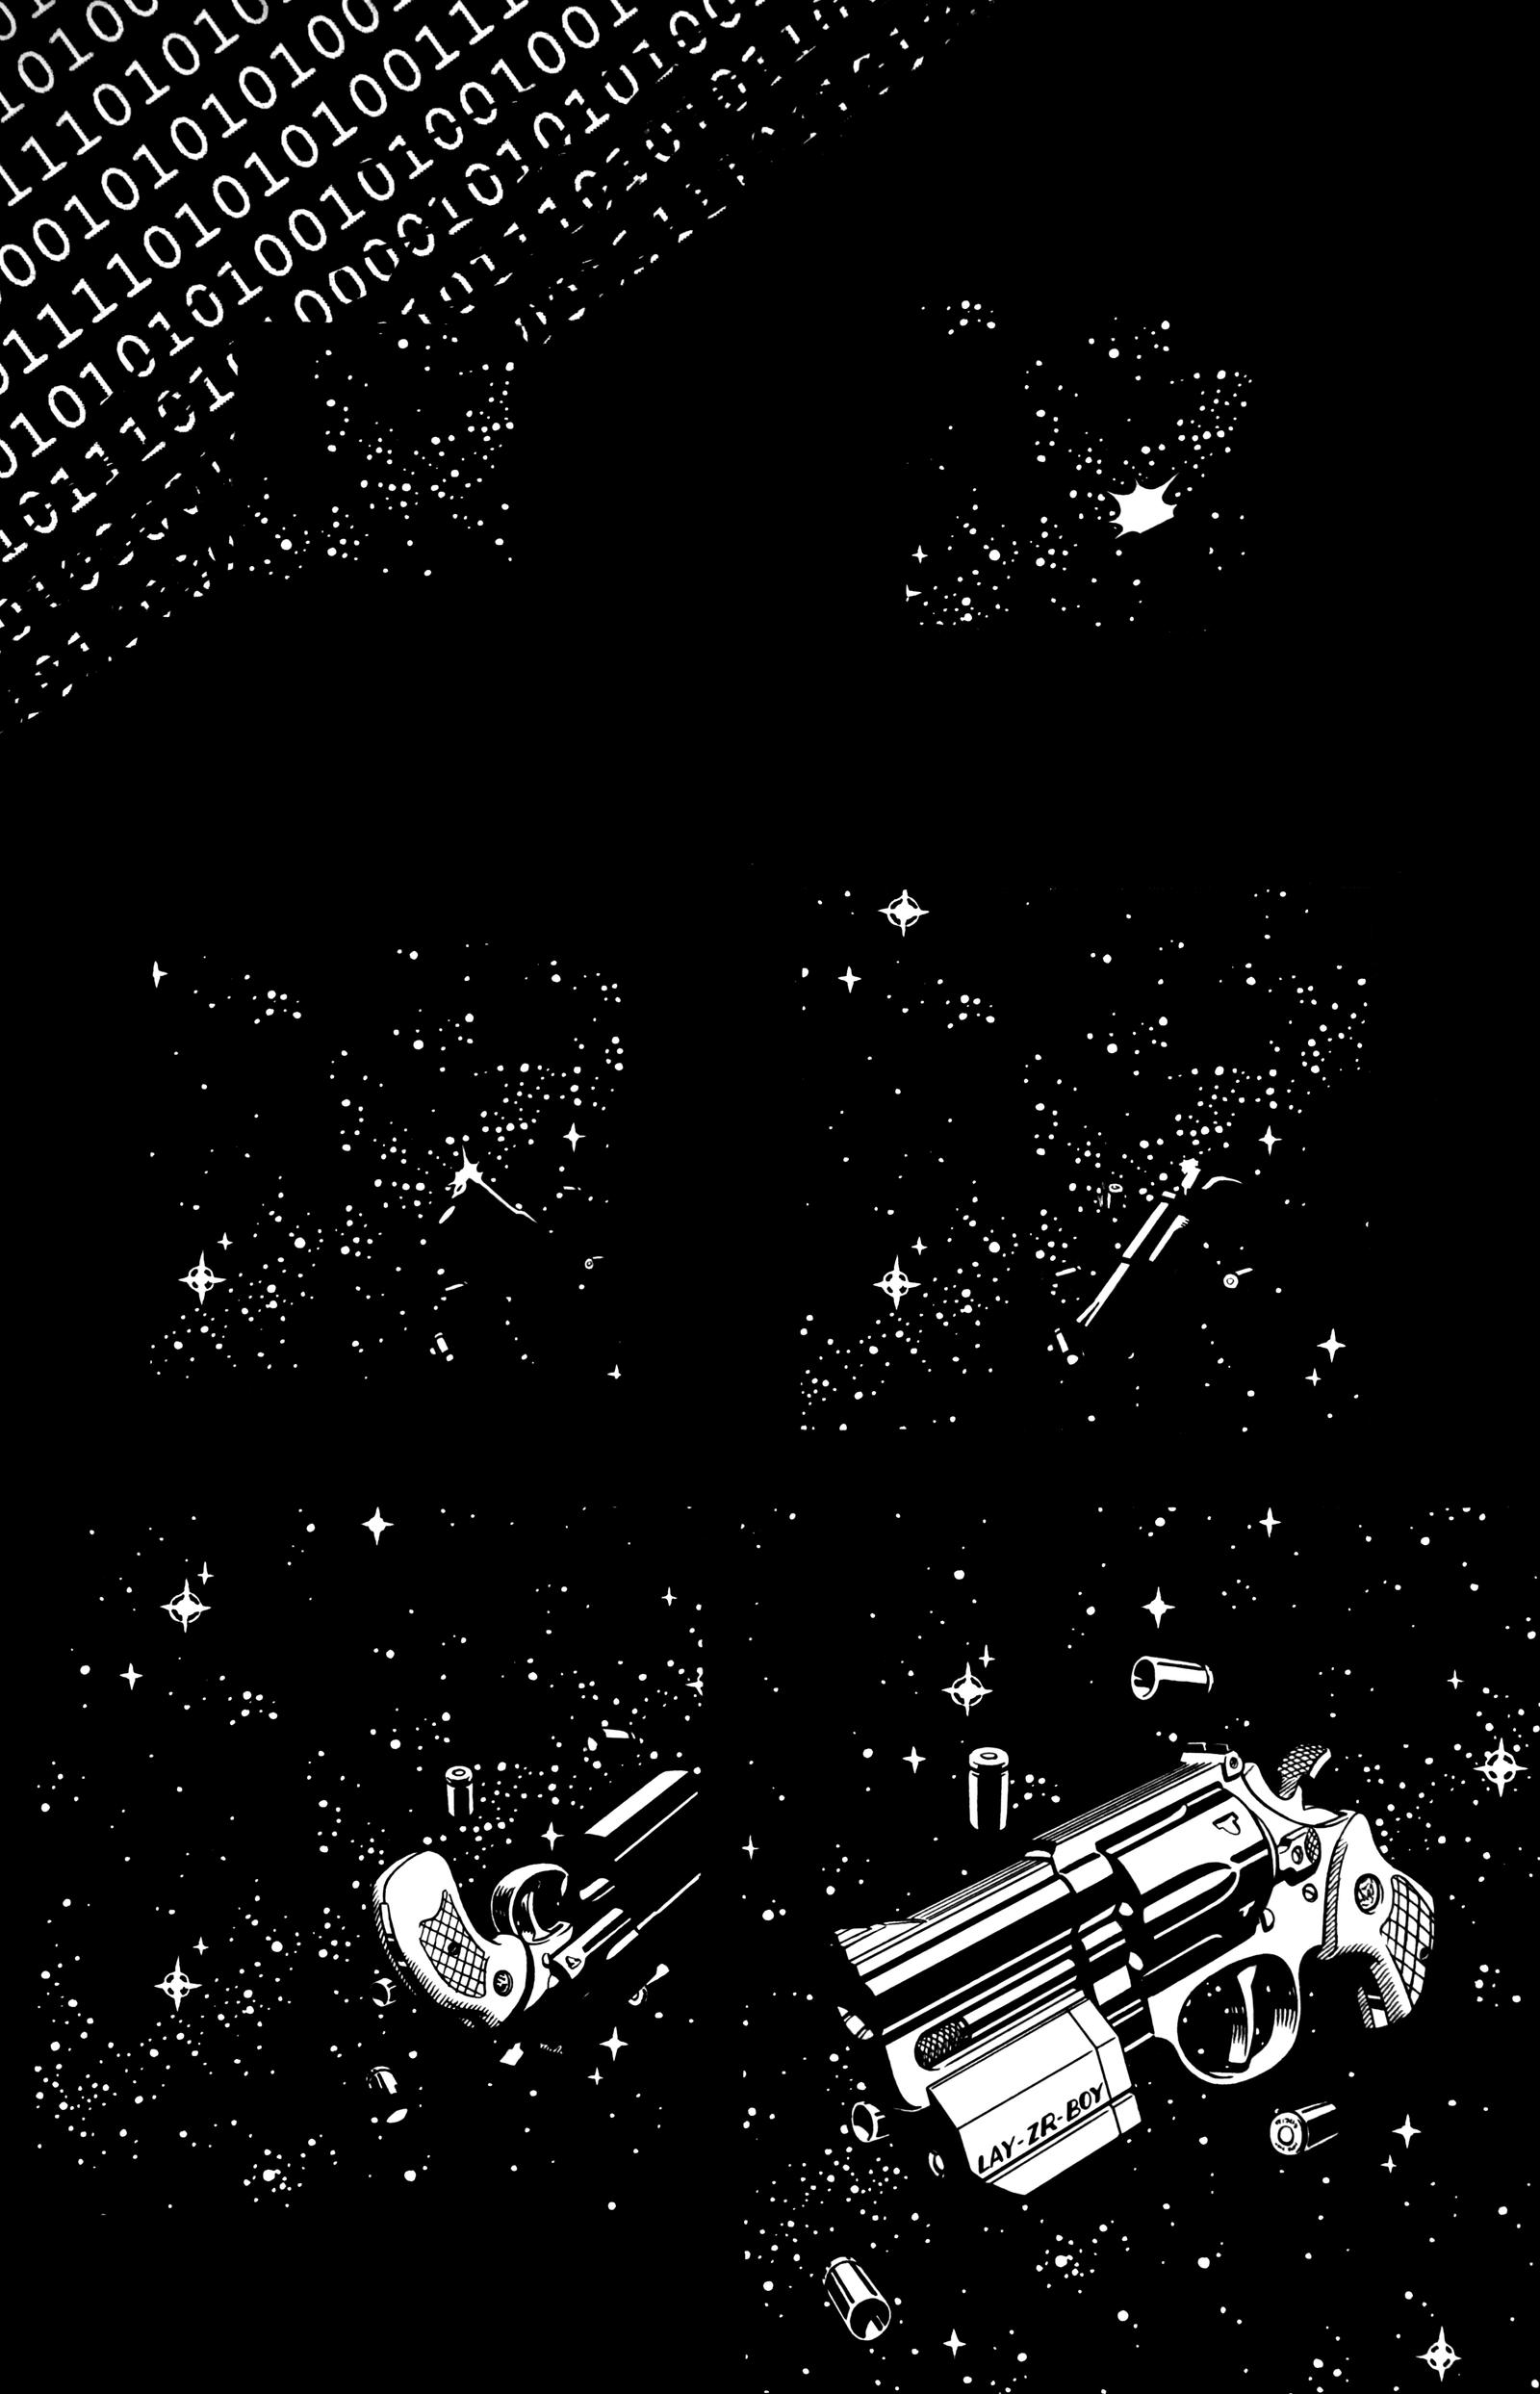 Dead Space - Inked Page by SteamPoweredMikeJ